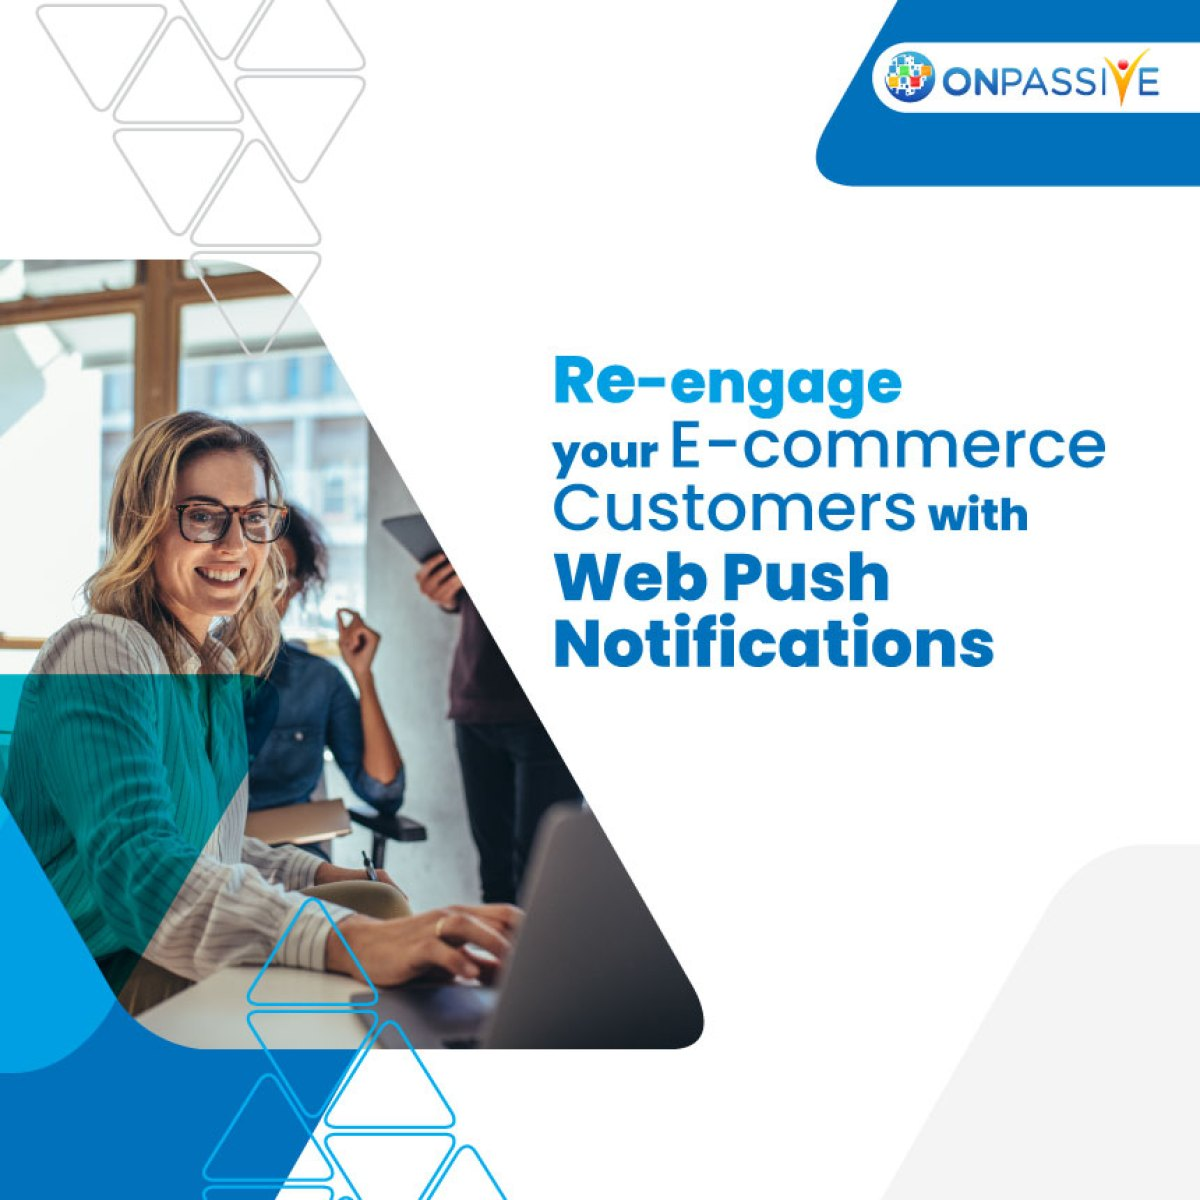 5 Creative Ways To Re-engage Your Customers With Web-push Notifications